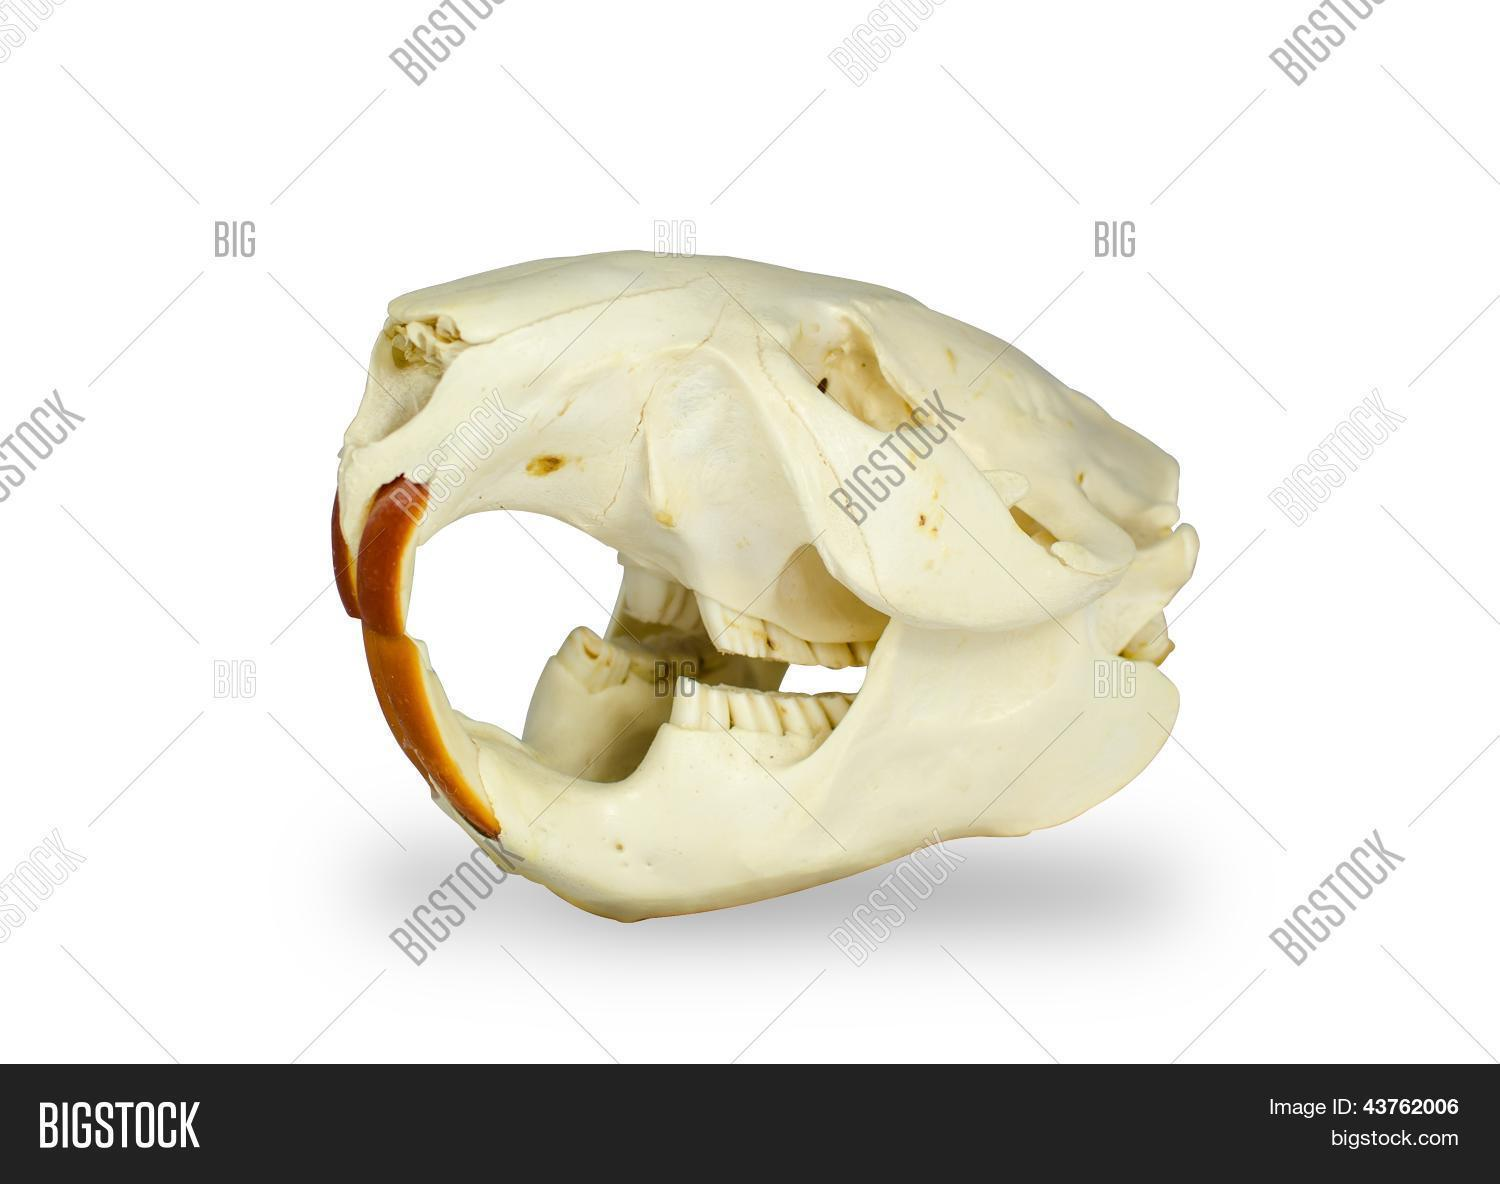 Beaver Skull Image & Photo (Free Trial) | Bigstock